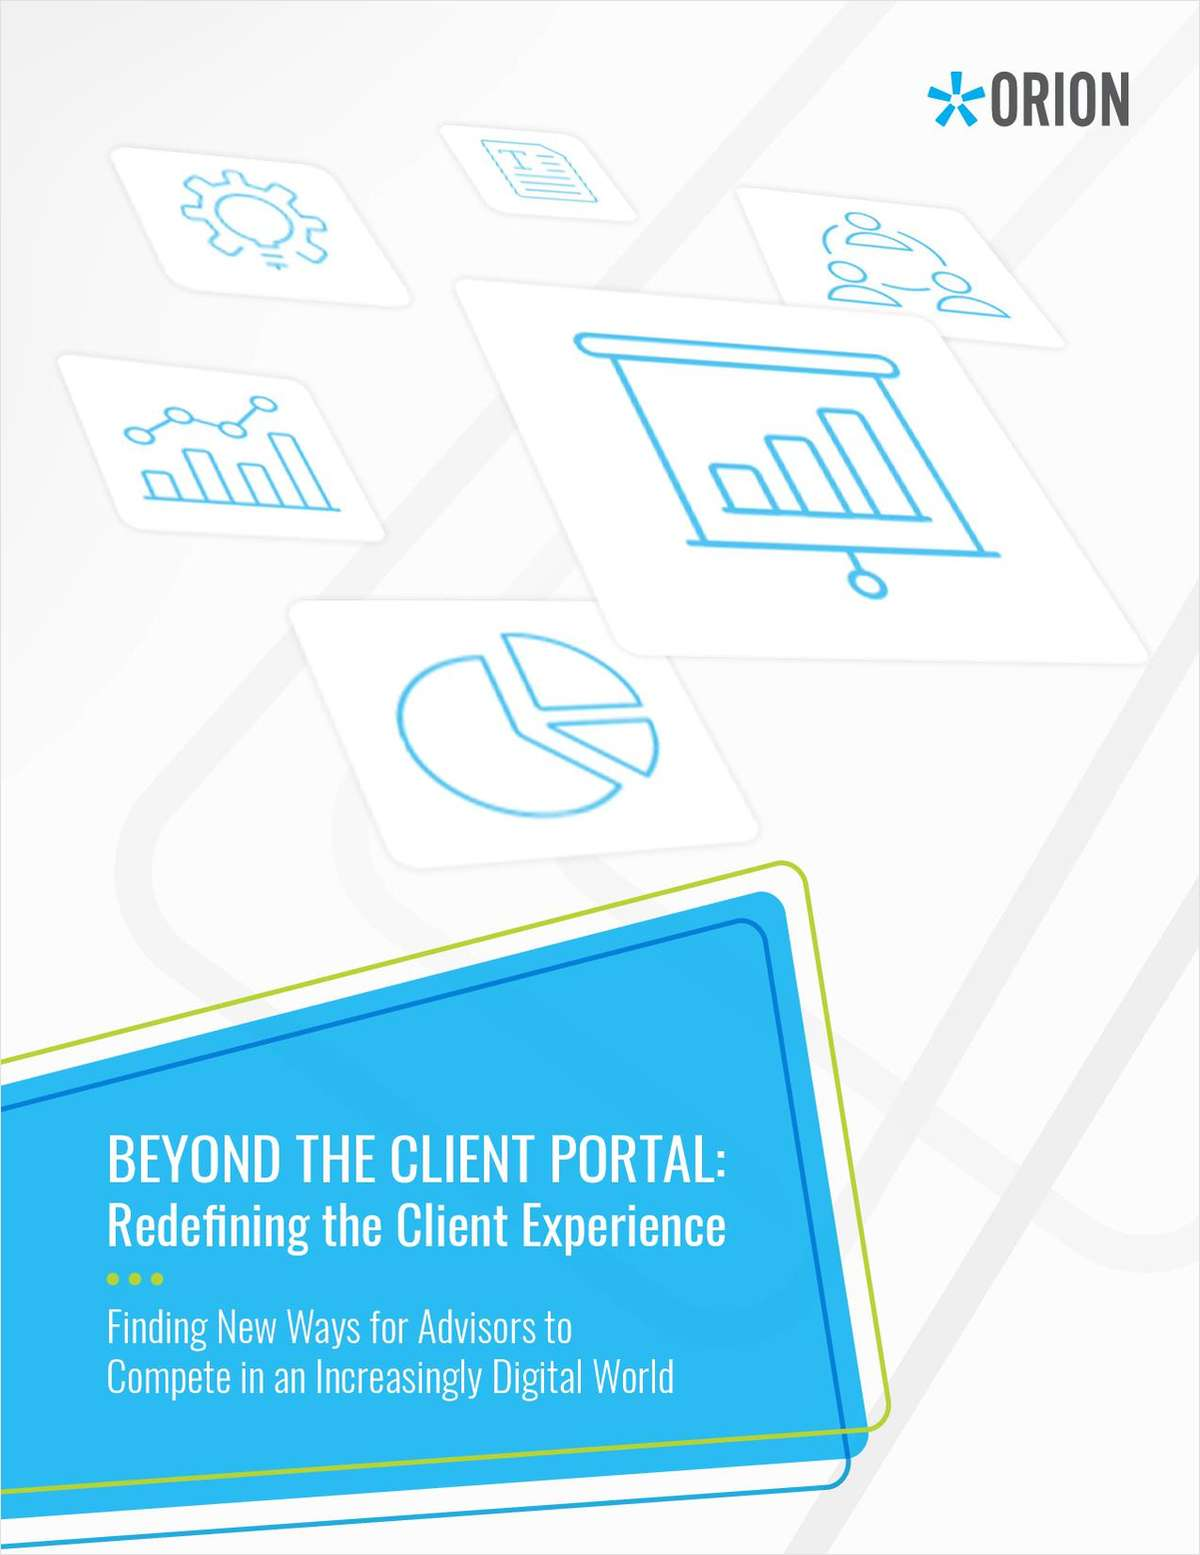 Transforming the Client Experience: Finding New Ways For Advisors to Compete In An Increasingly Digital World